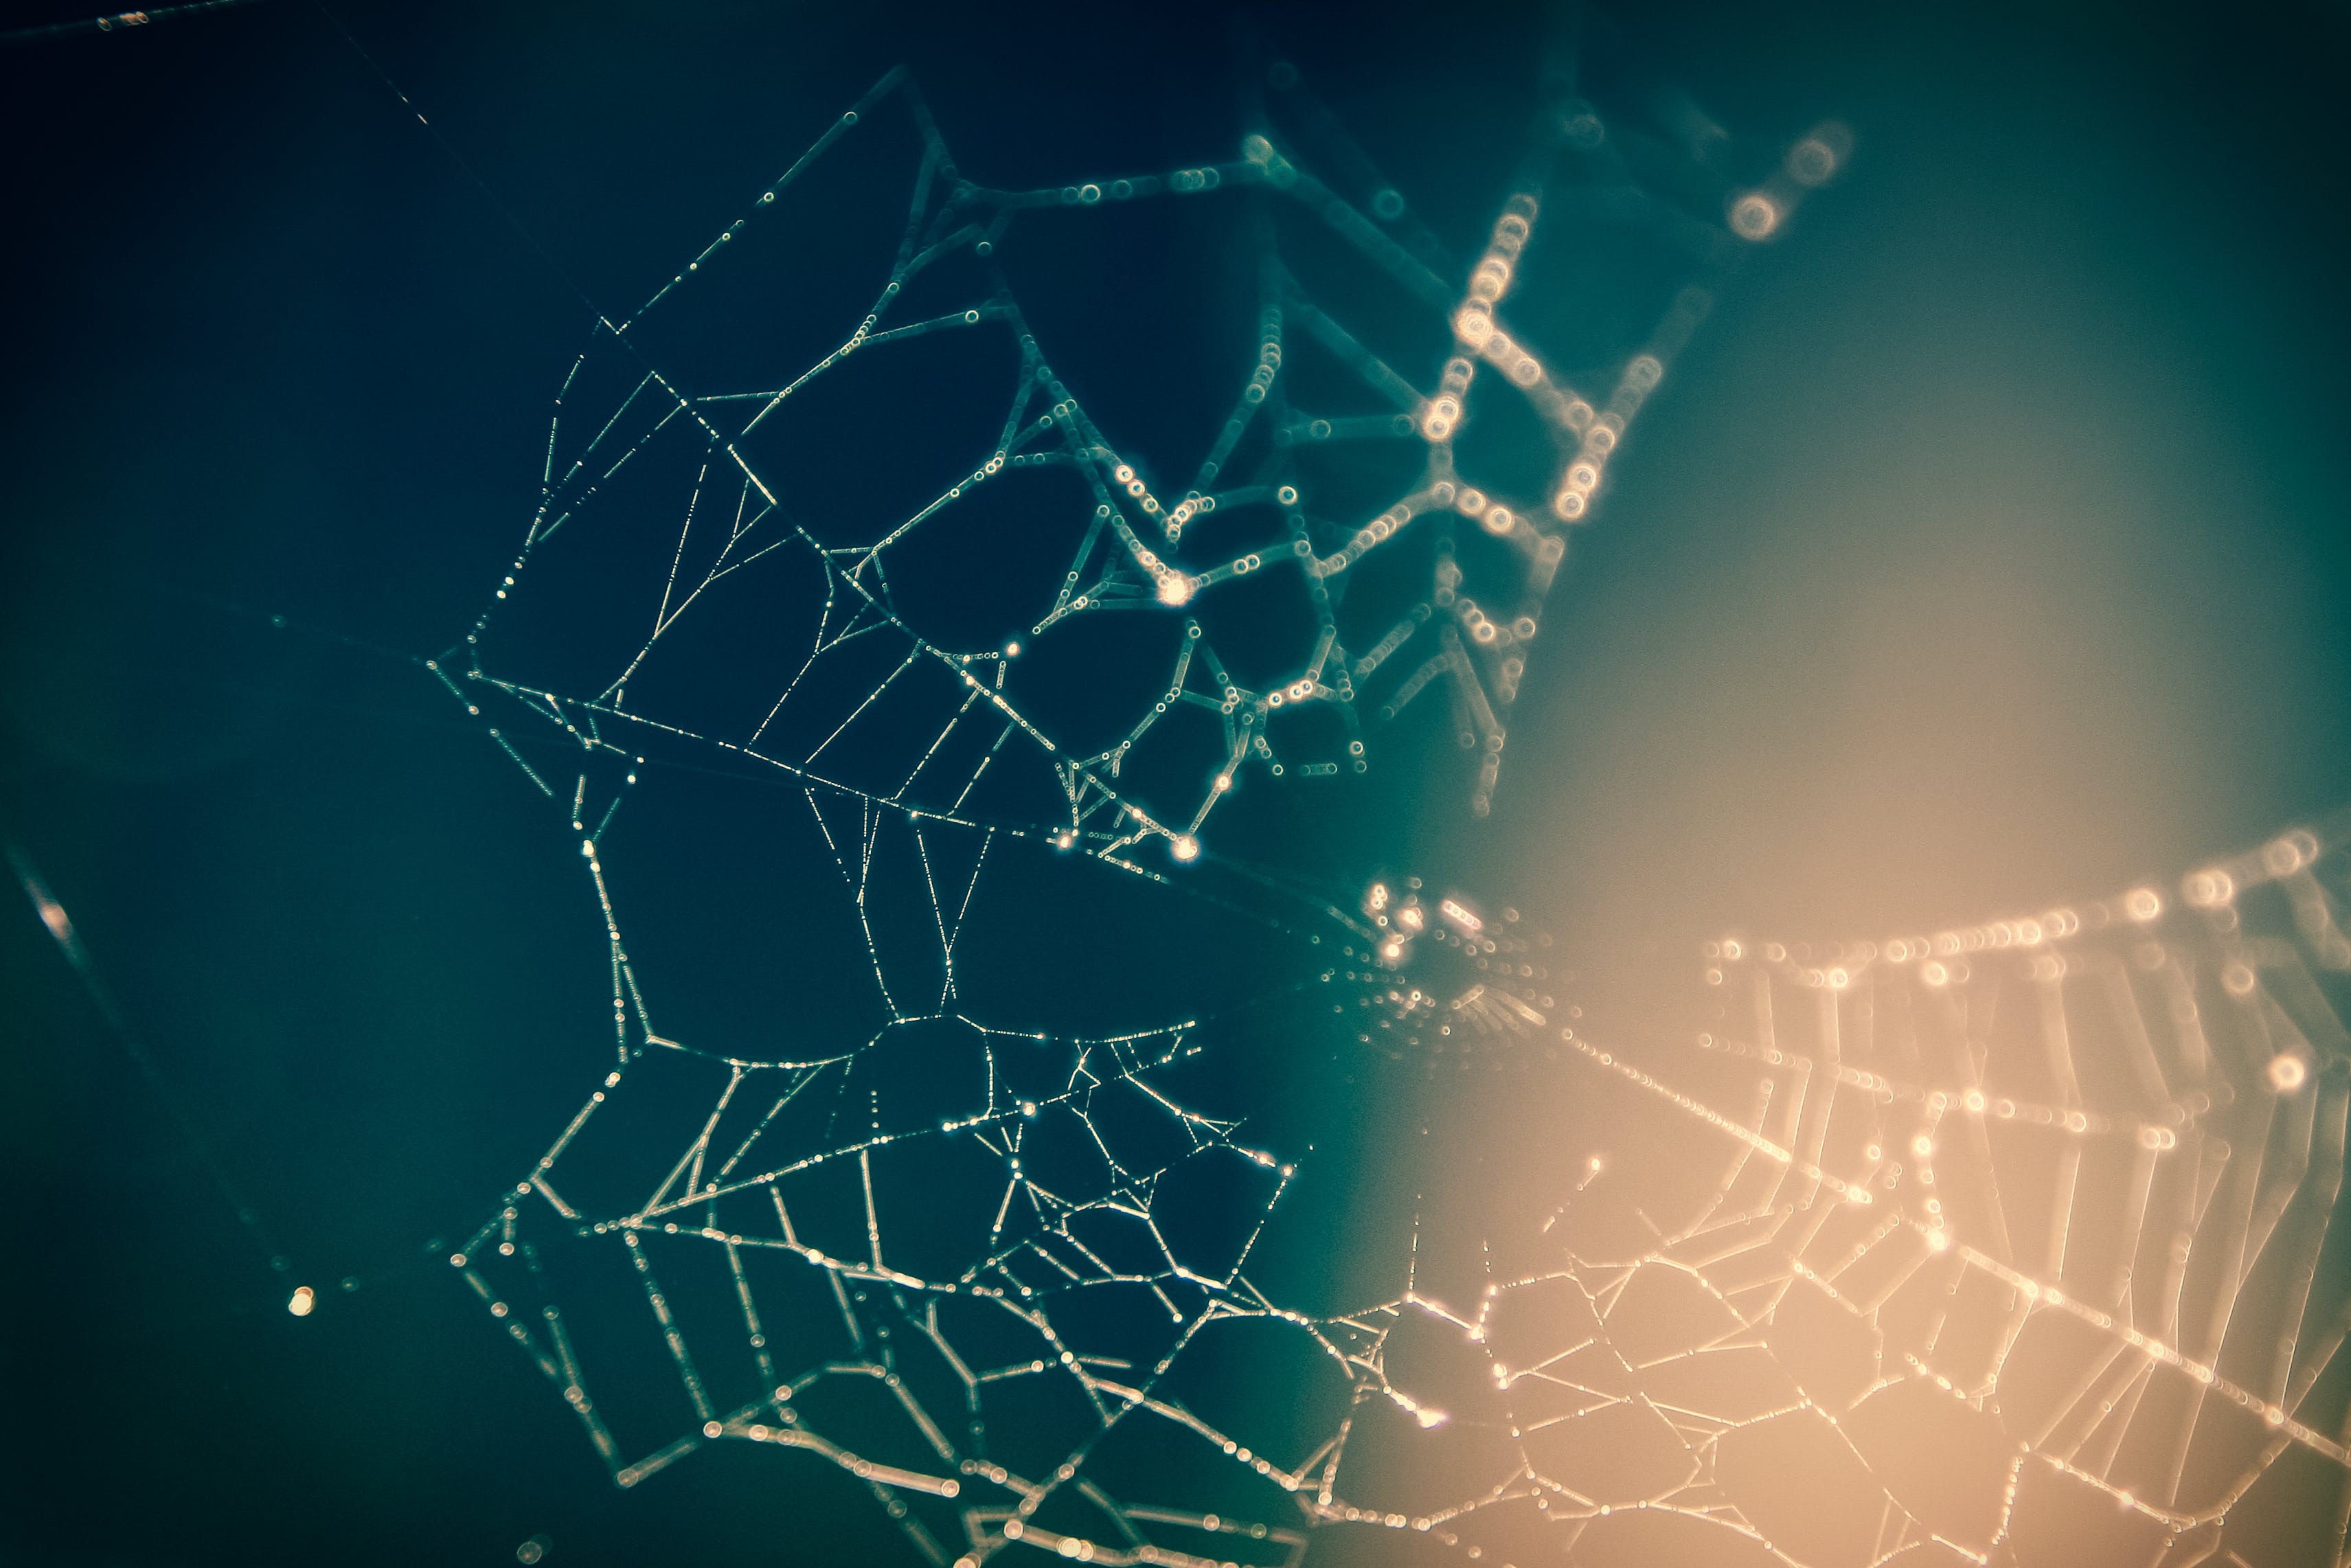 Close Up Photography of Spider Web